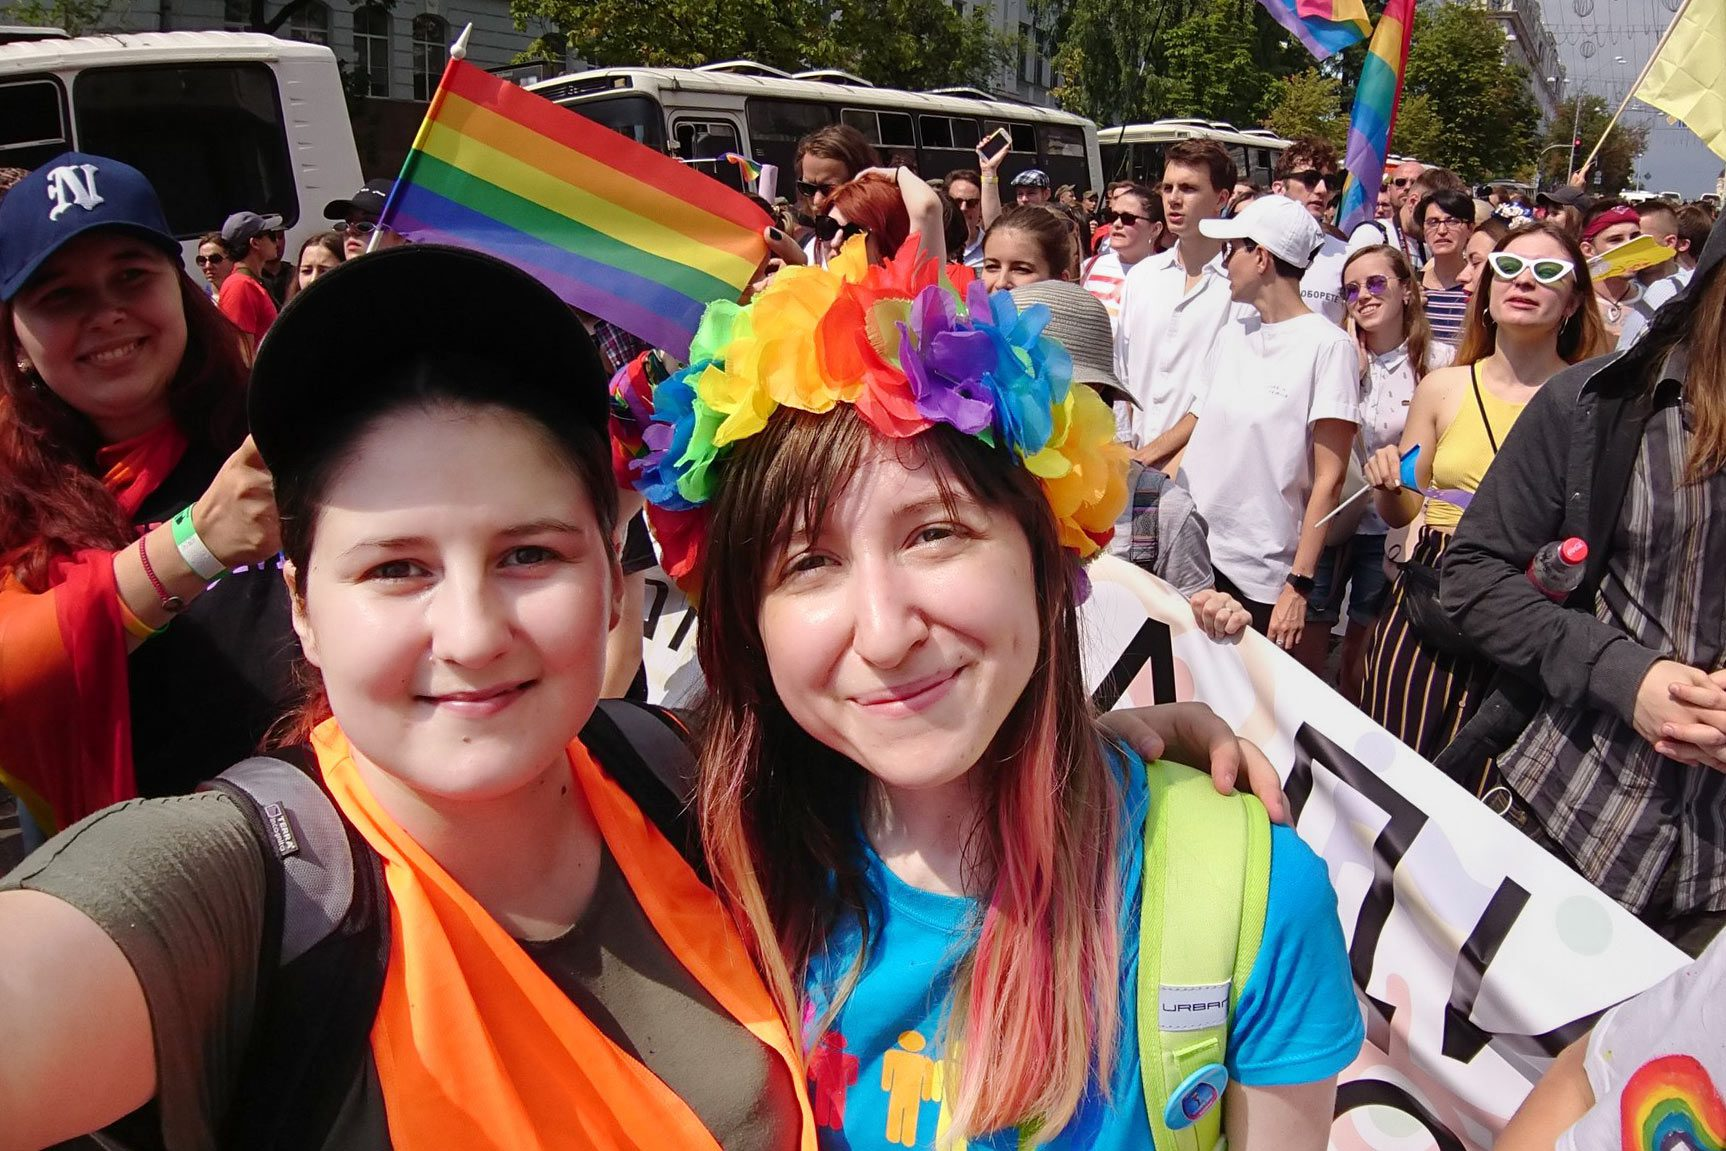 """vital koval 02 - <b>Three Years Ago, LGBT Activist Vitalina Koval Was Attacked by """"Far-Right"""" Activists, and It Changed Her Life Dramatically.</b> Here Is Her Story - Заборона"""